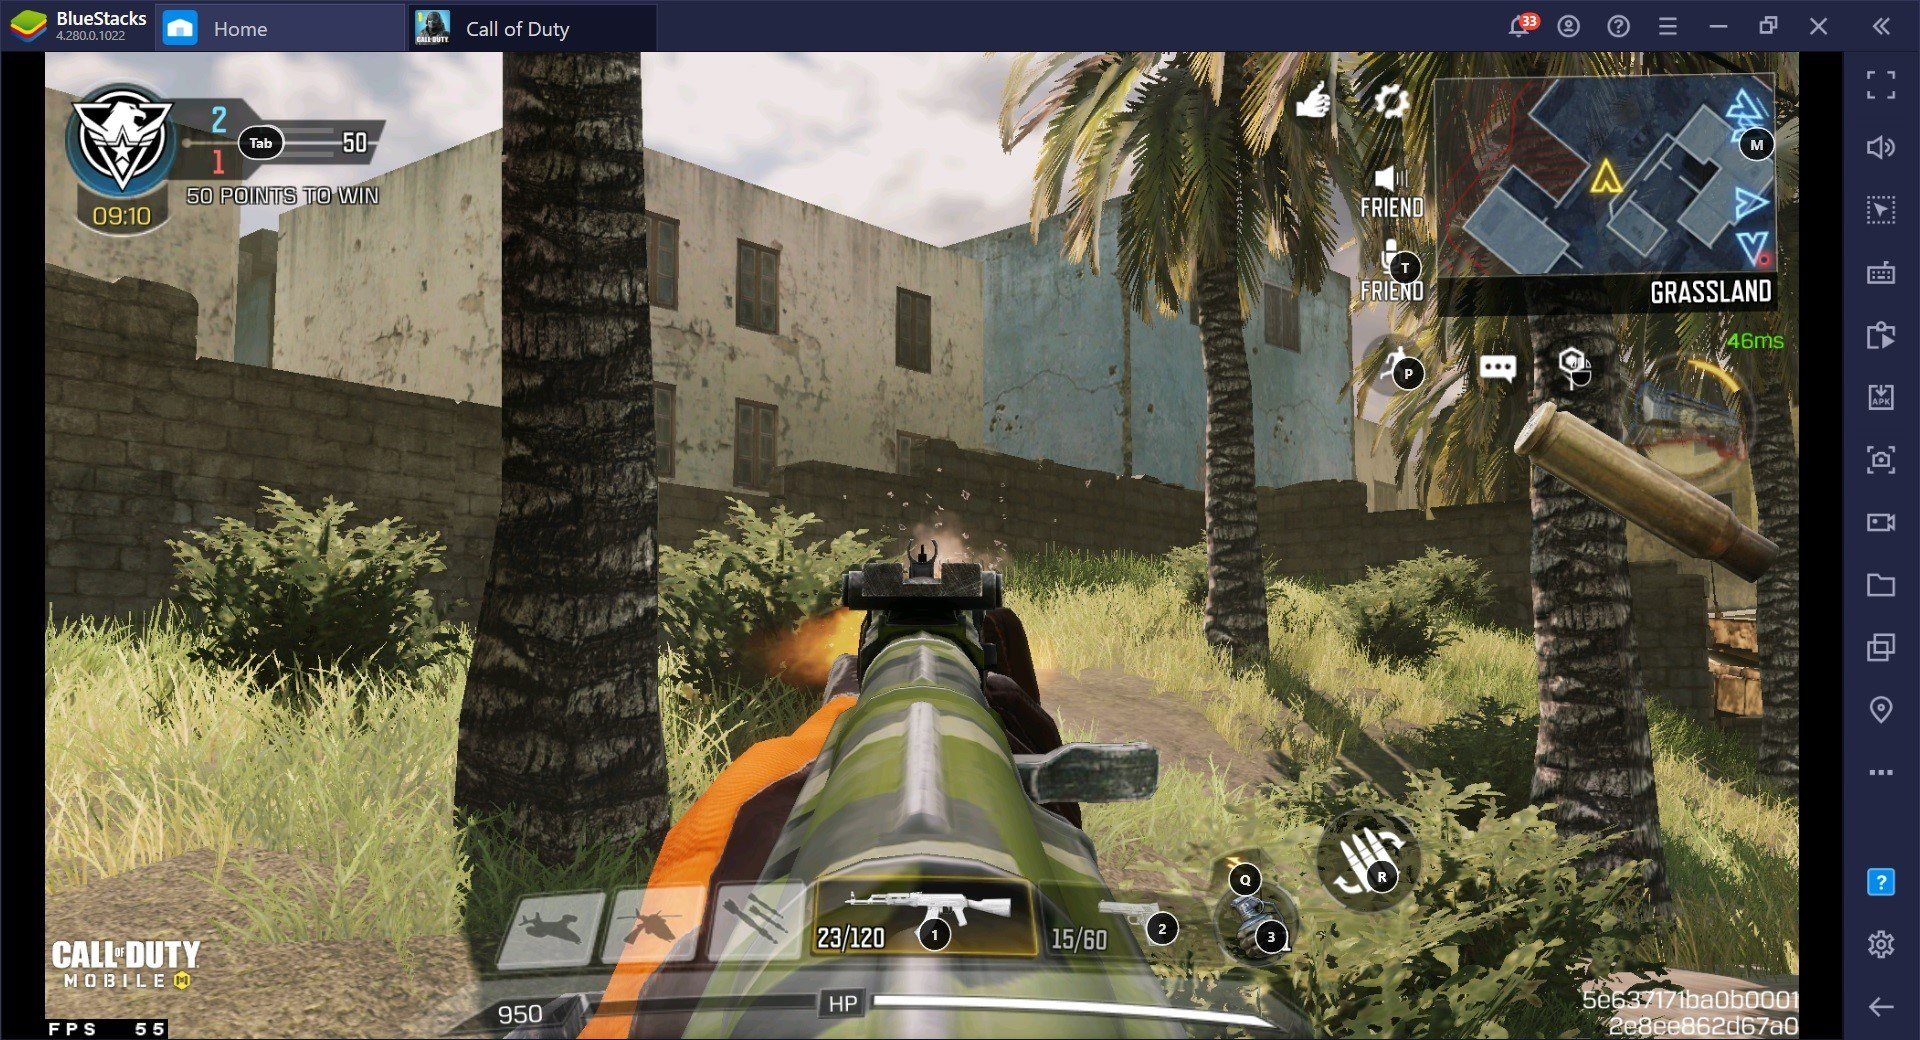 Call of Duty: Mobile AK-47 Guide